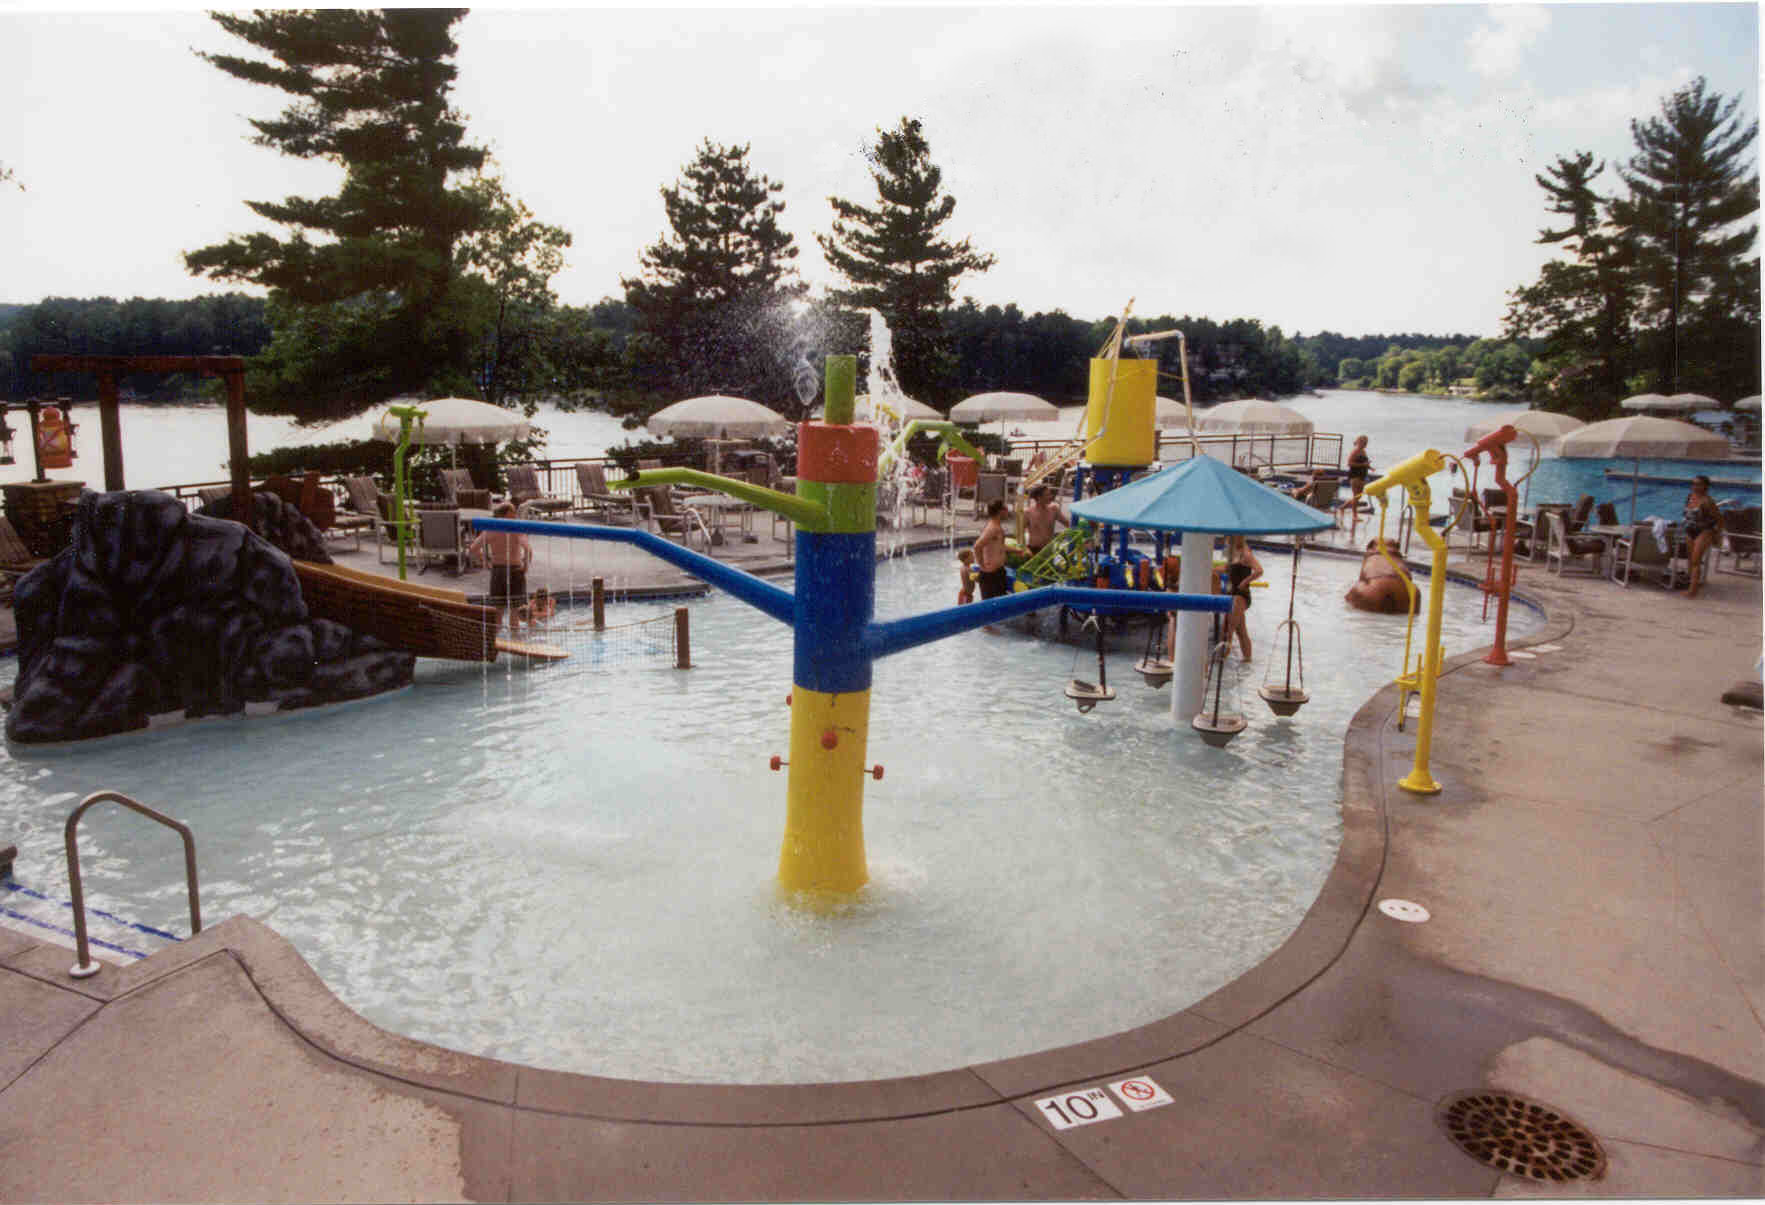 Outdoor kids play area at the Wilderness on the Lake in Lake Delton, WI